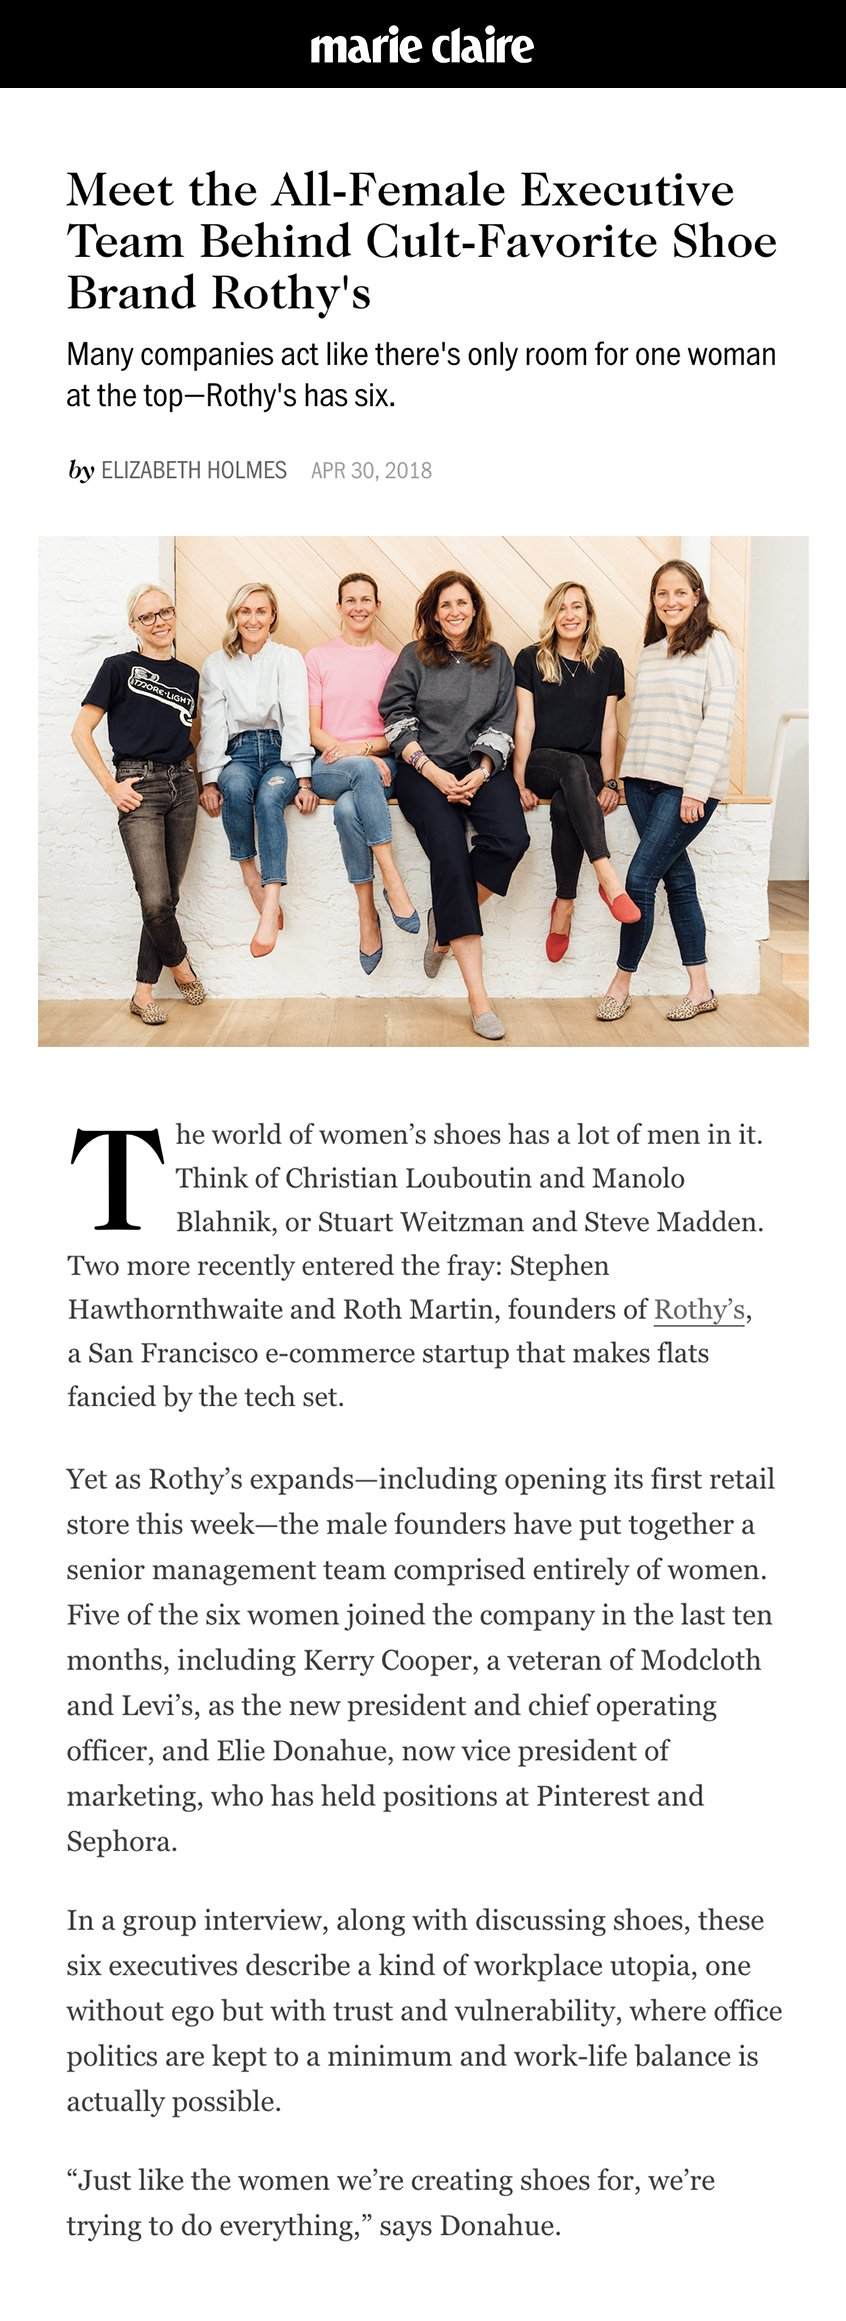 Just like the women we're creating shoes for, we're trying to do everything